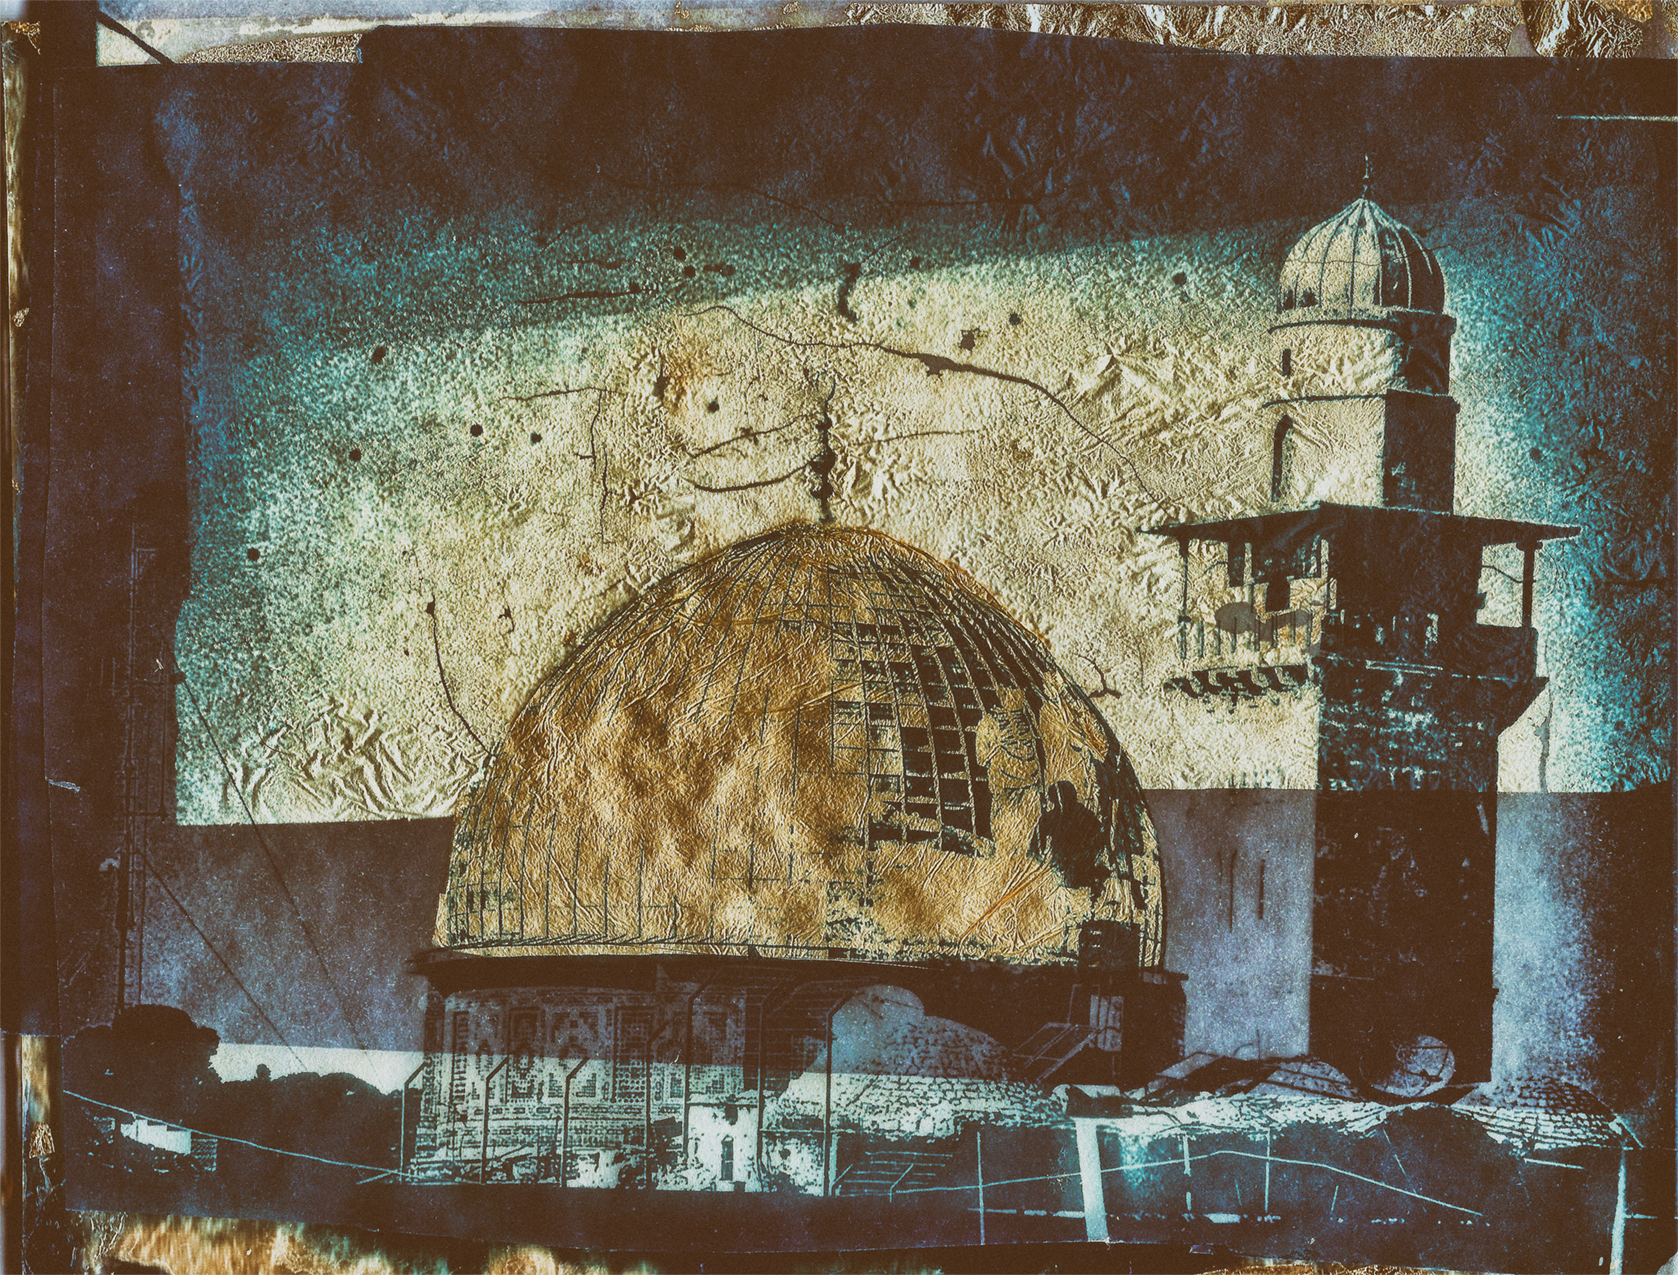 """7"""" x 5"""" Cyanotype on Vellum with Gold Leaf of the Dome of the Rock, Jerusalem. (©Mark Pearson)"""